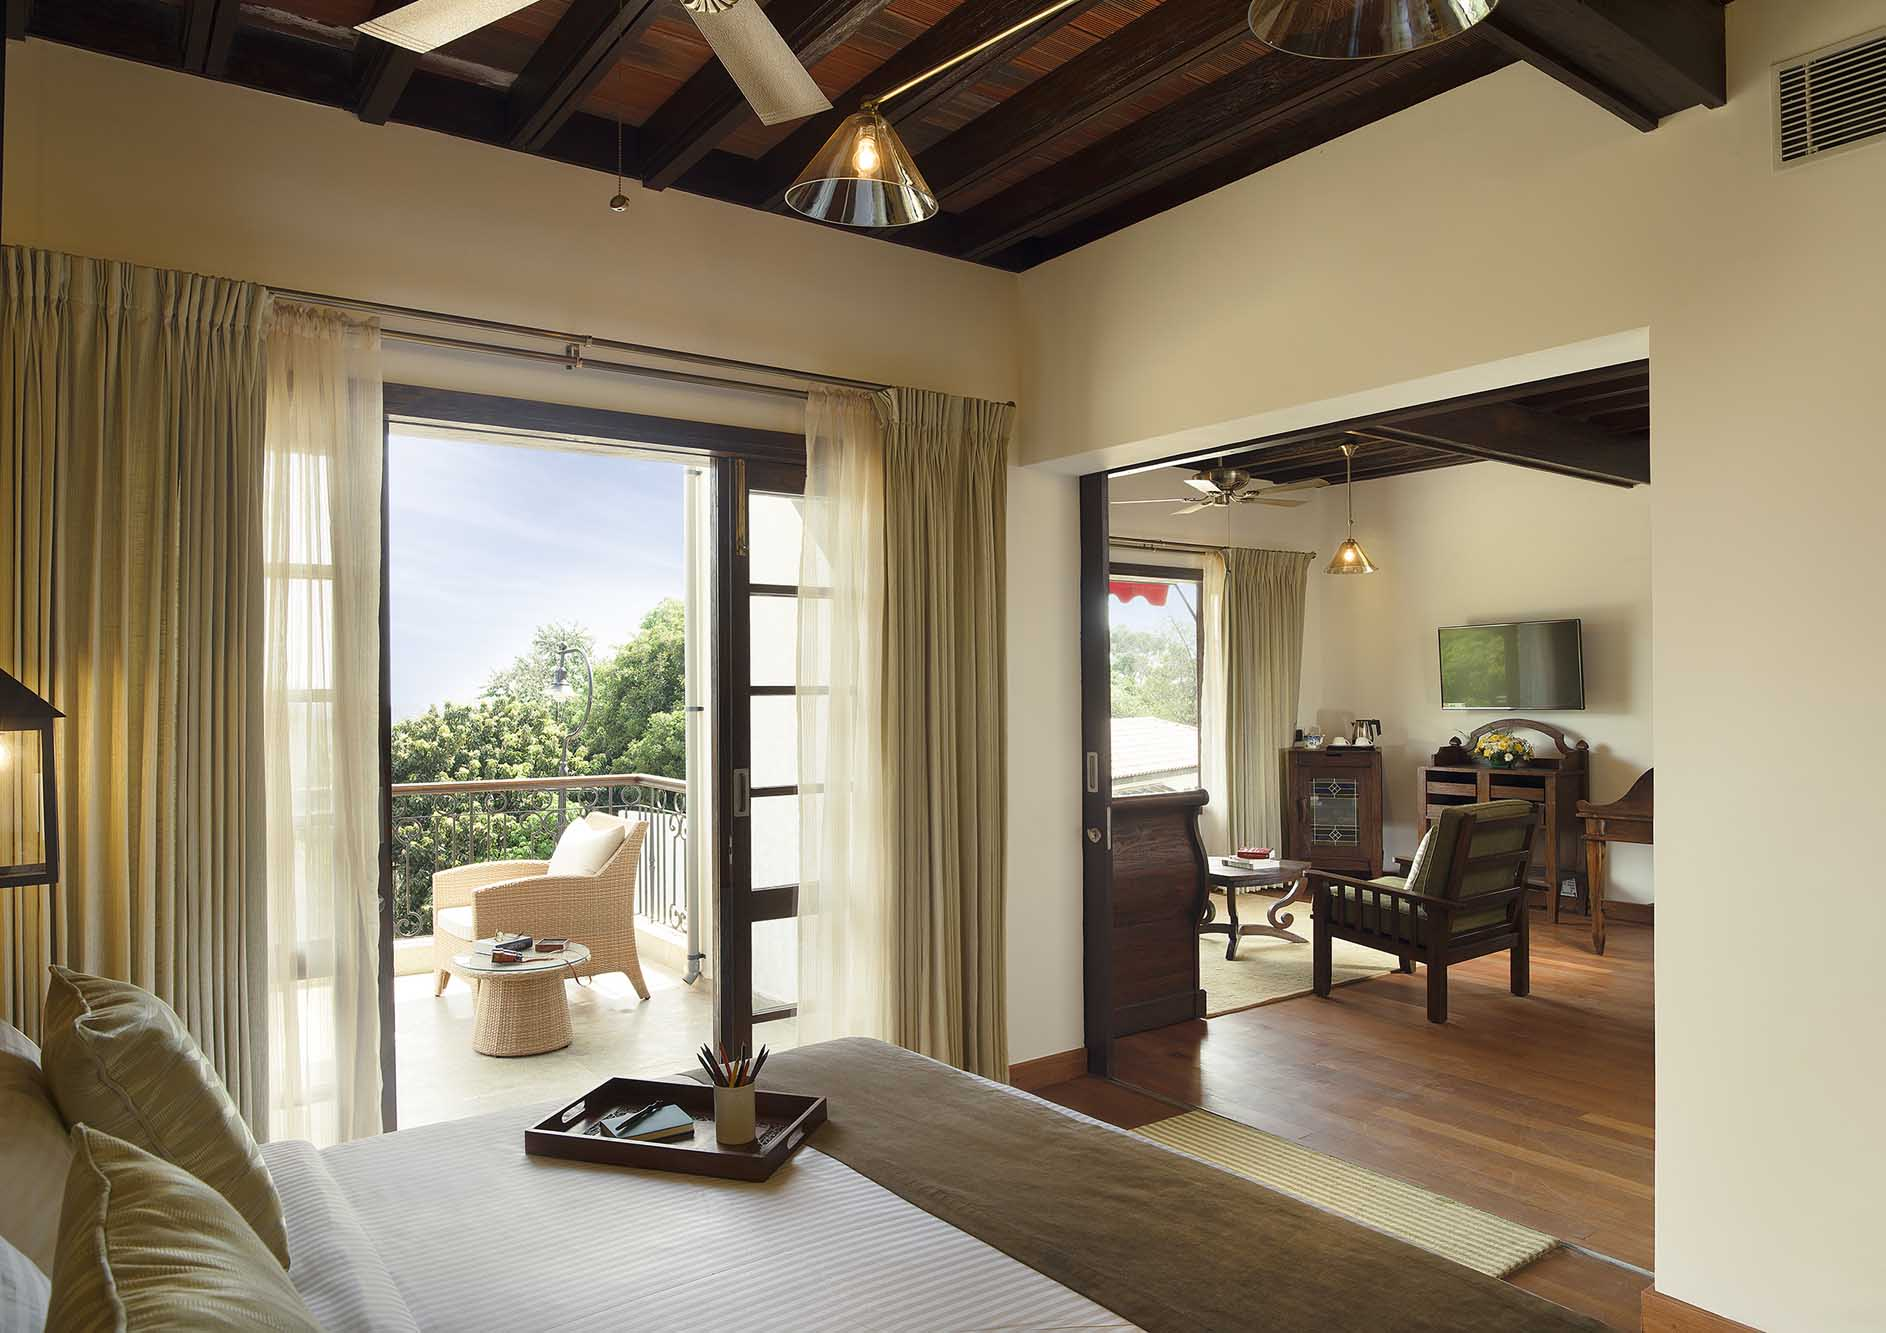 luxury-room-with-nature-view